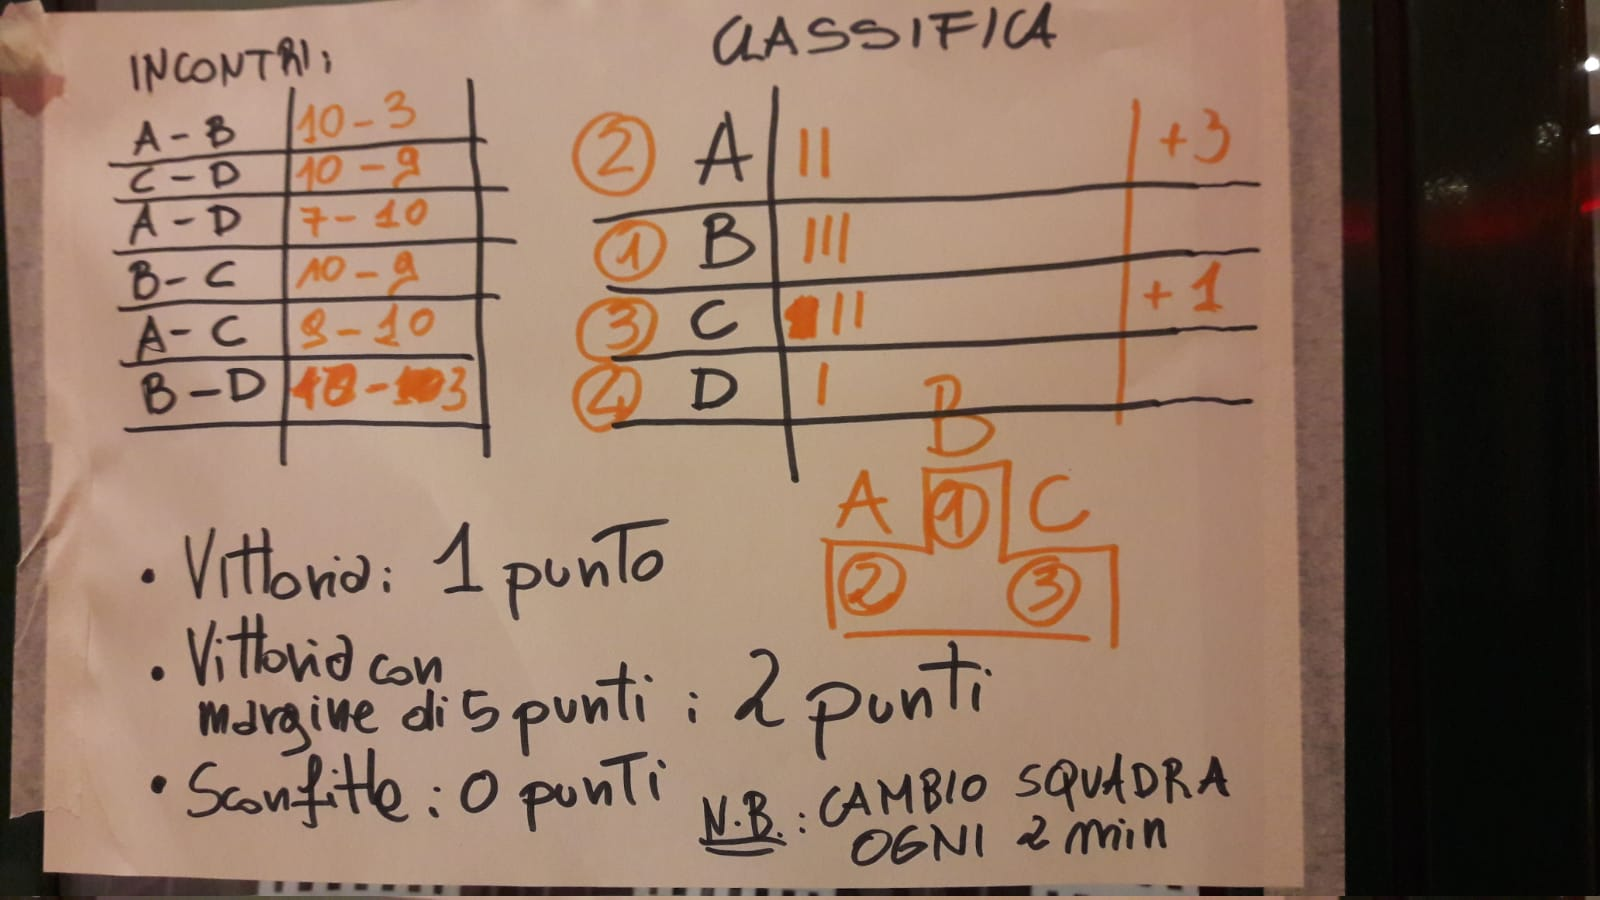 Torneo di calcetto - Risultati, classifica e podio